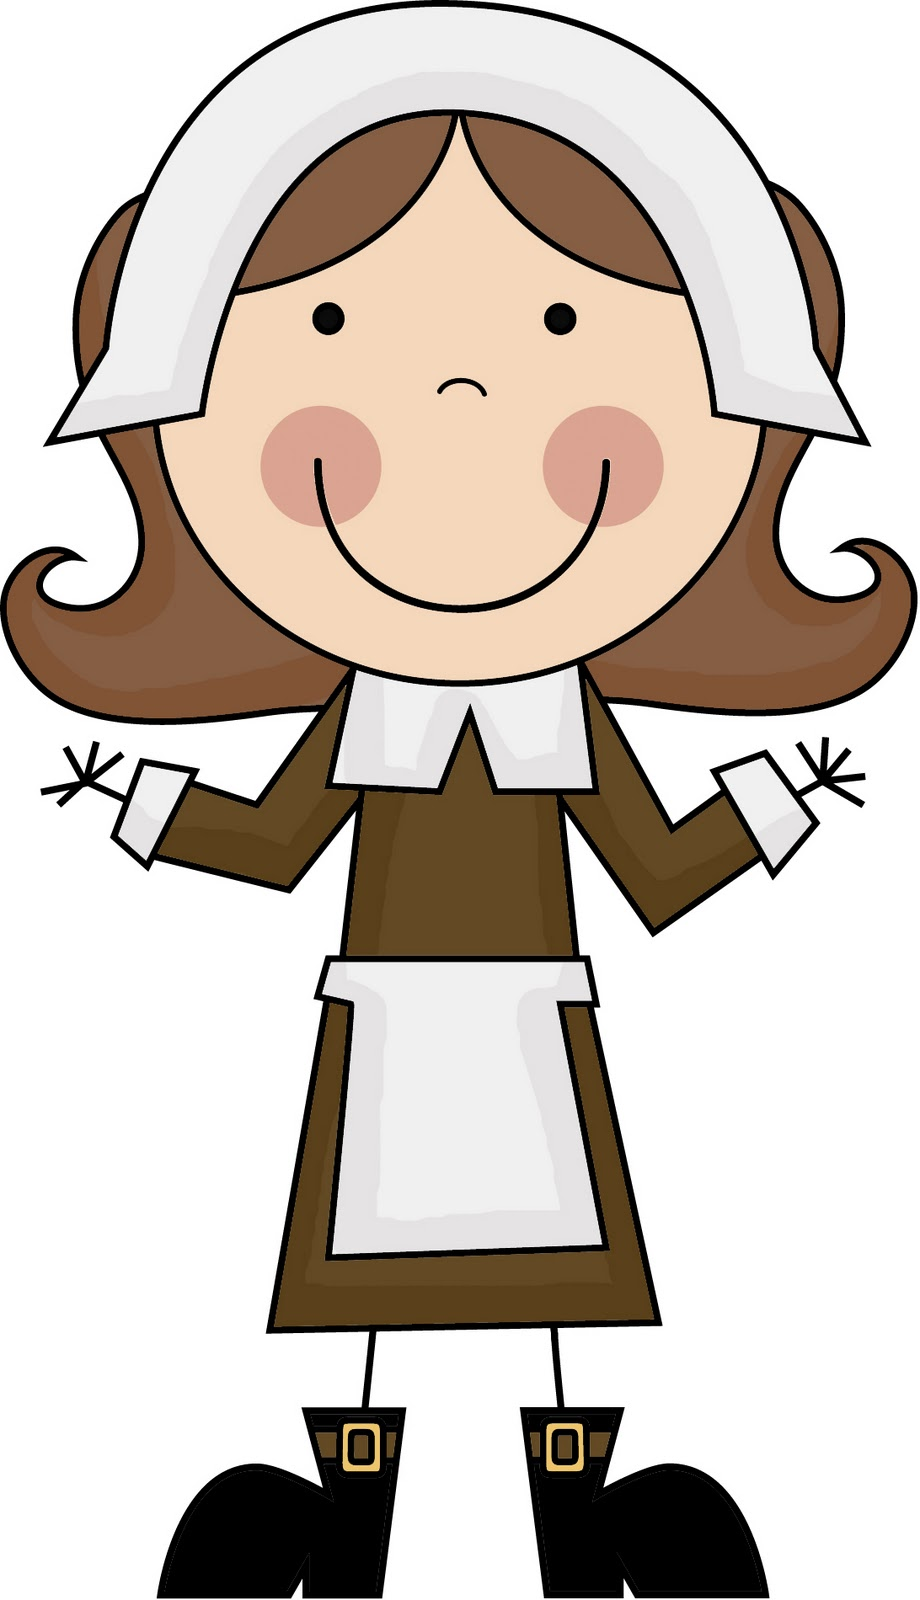 Clip Art Pilgrims Clipart pilgrims and indians clipart kid there are literacy math activities included lots more i